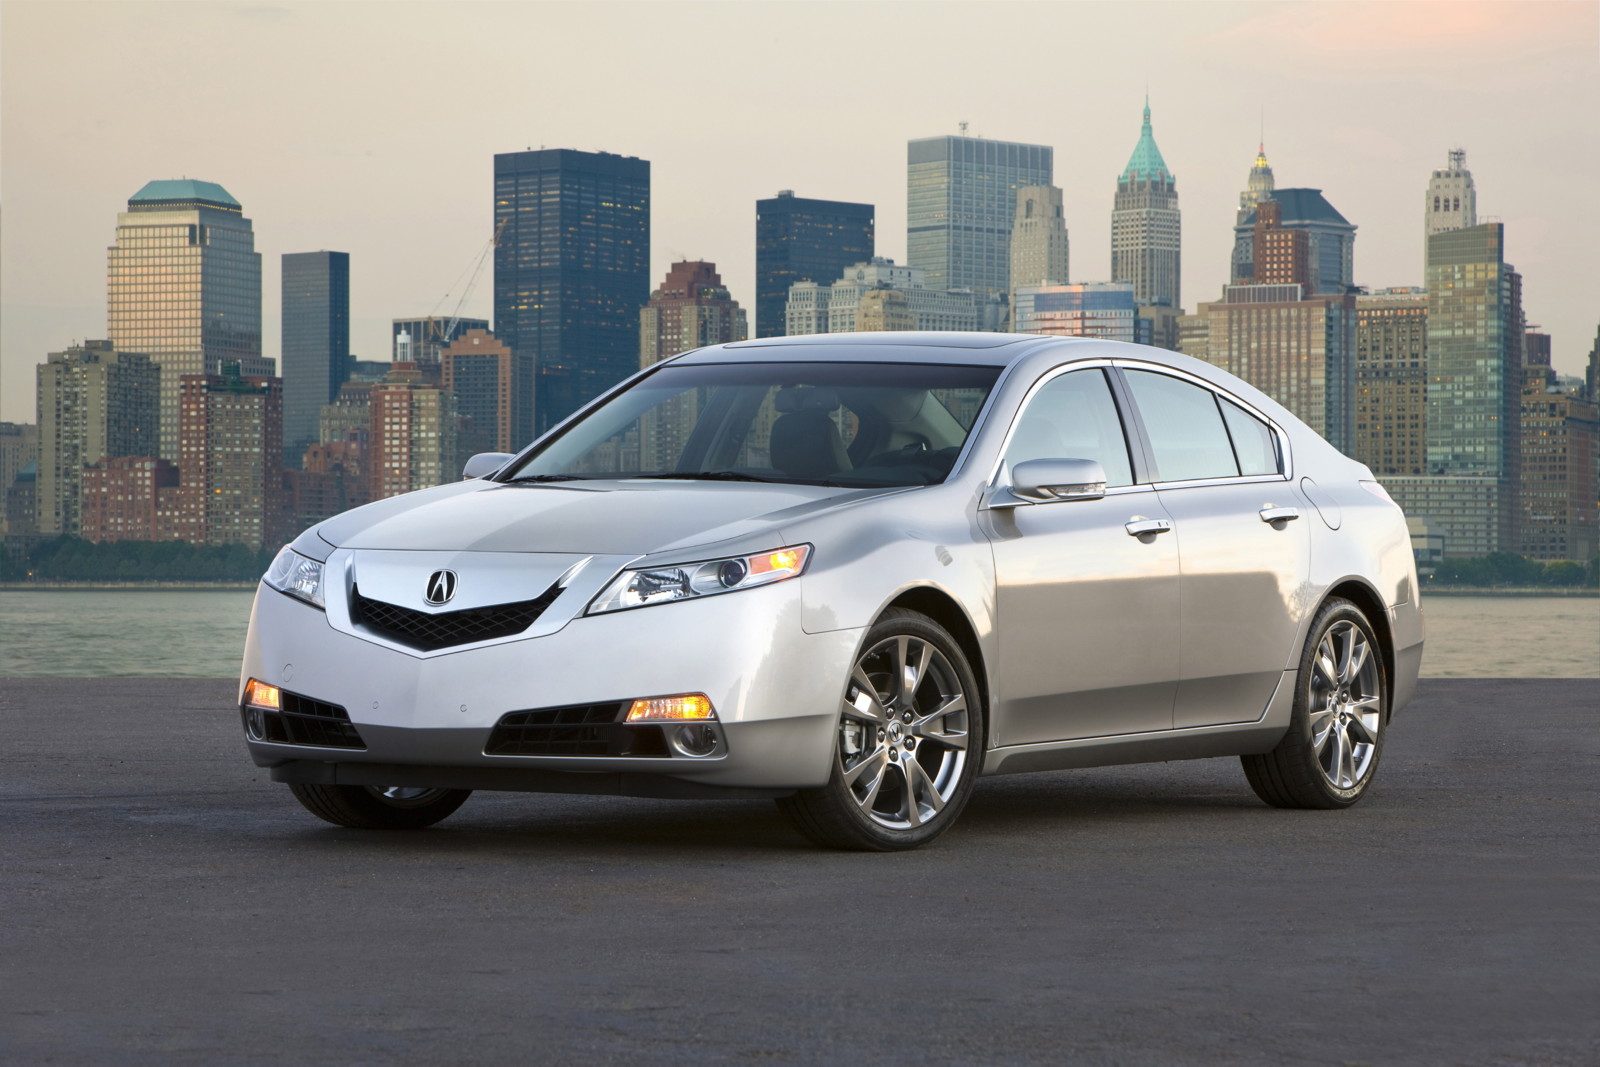 Most Expensive Lexus >> 2010 Acura TL Review